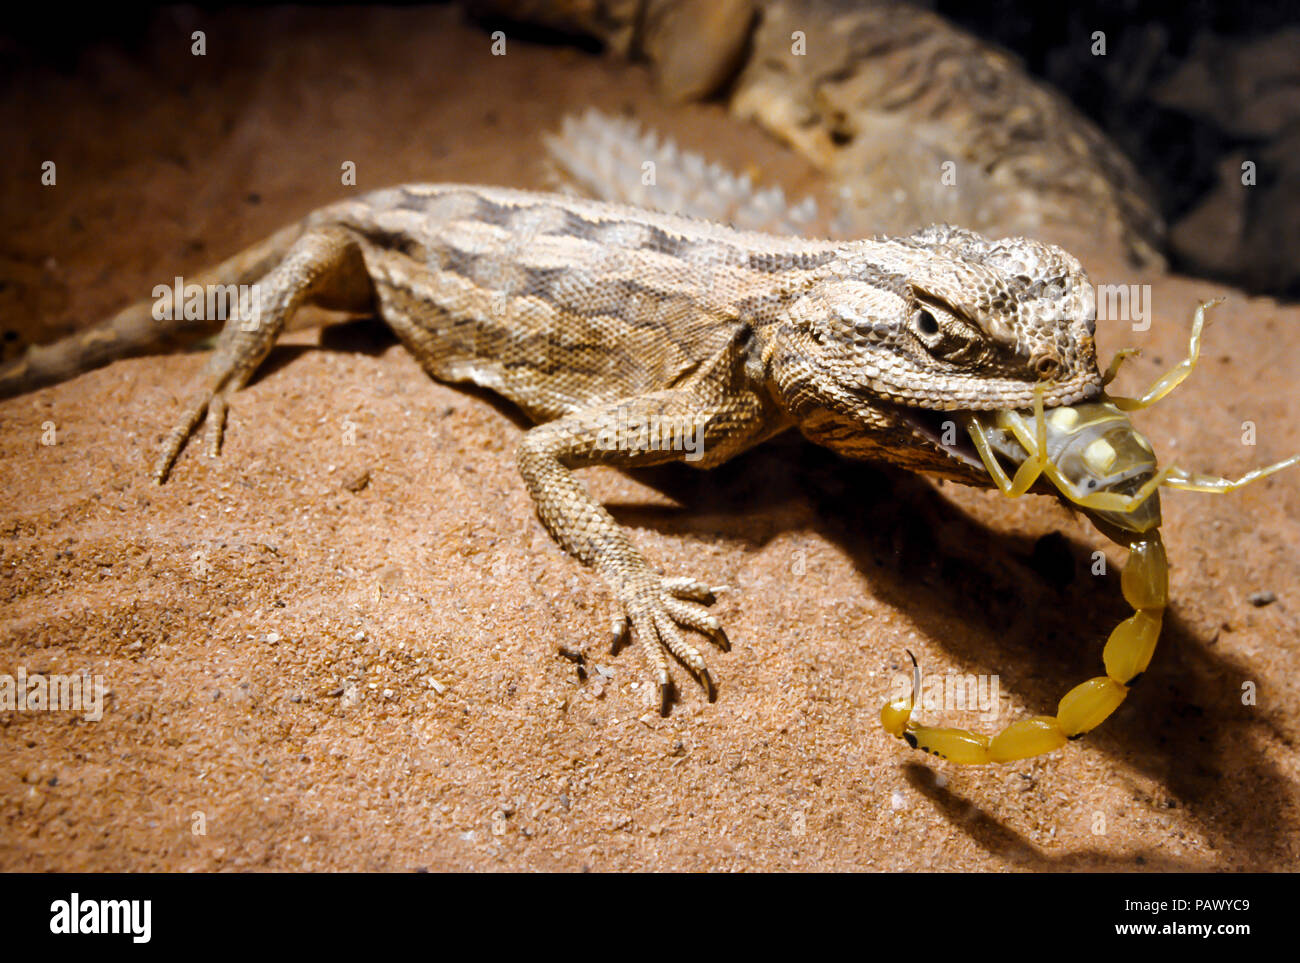 Agama Lizards Have Sticky Tongues Which Enable Them To Hold Onto